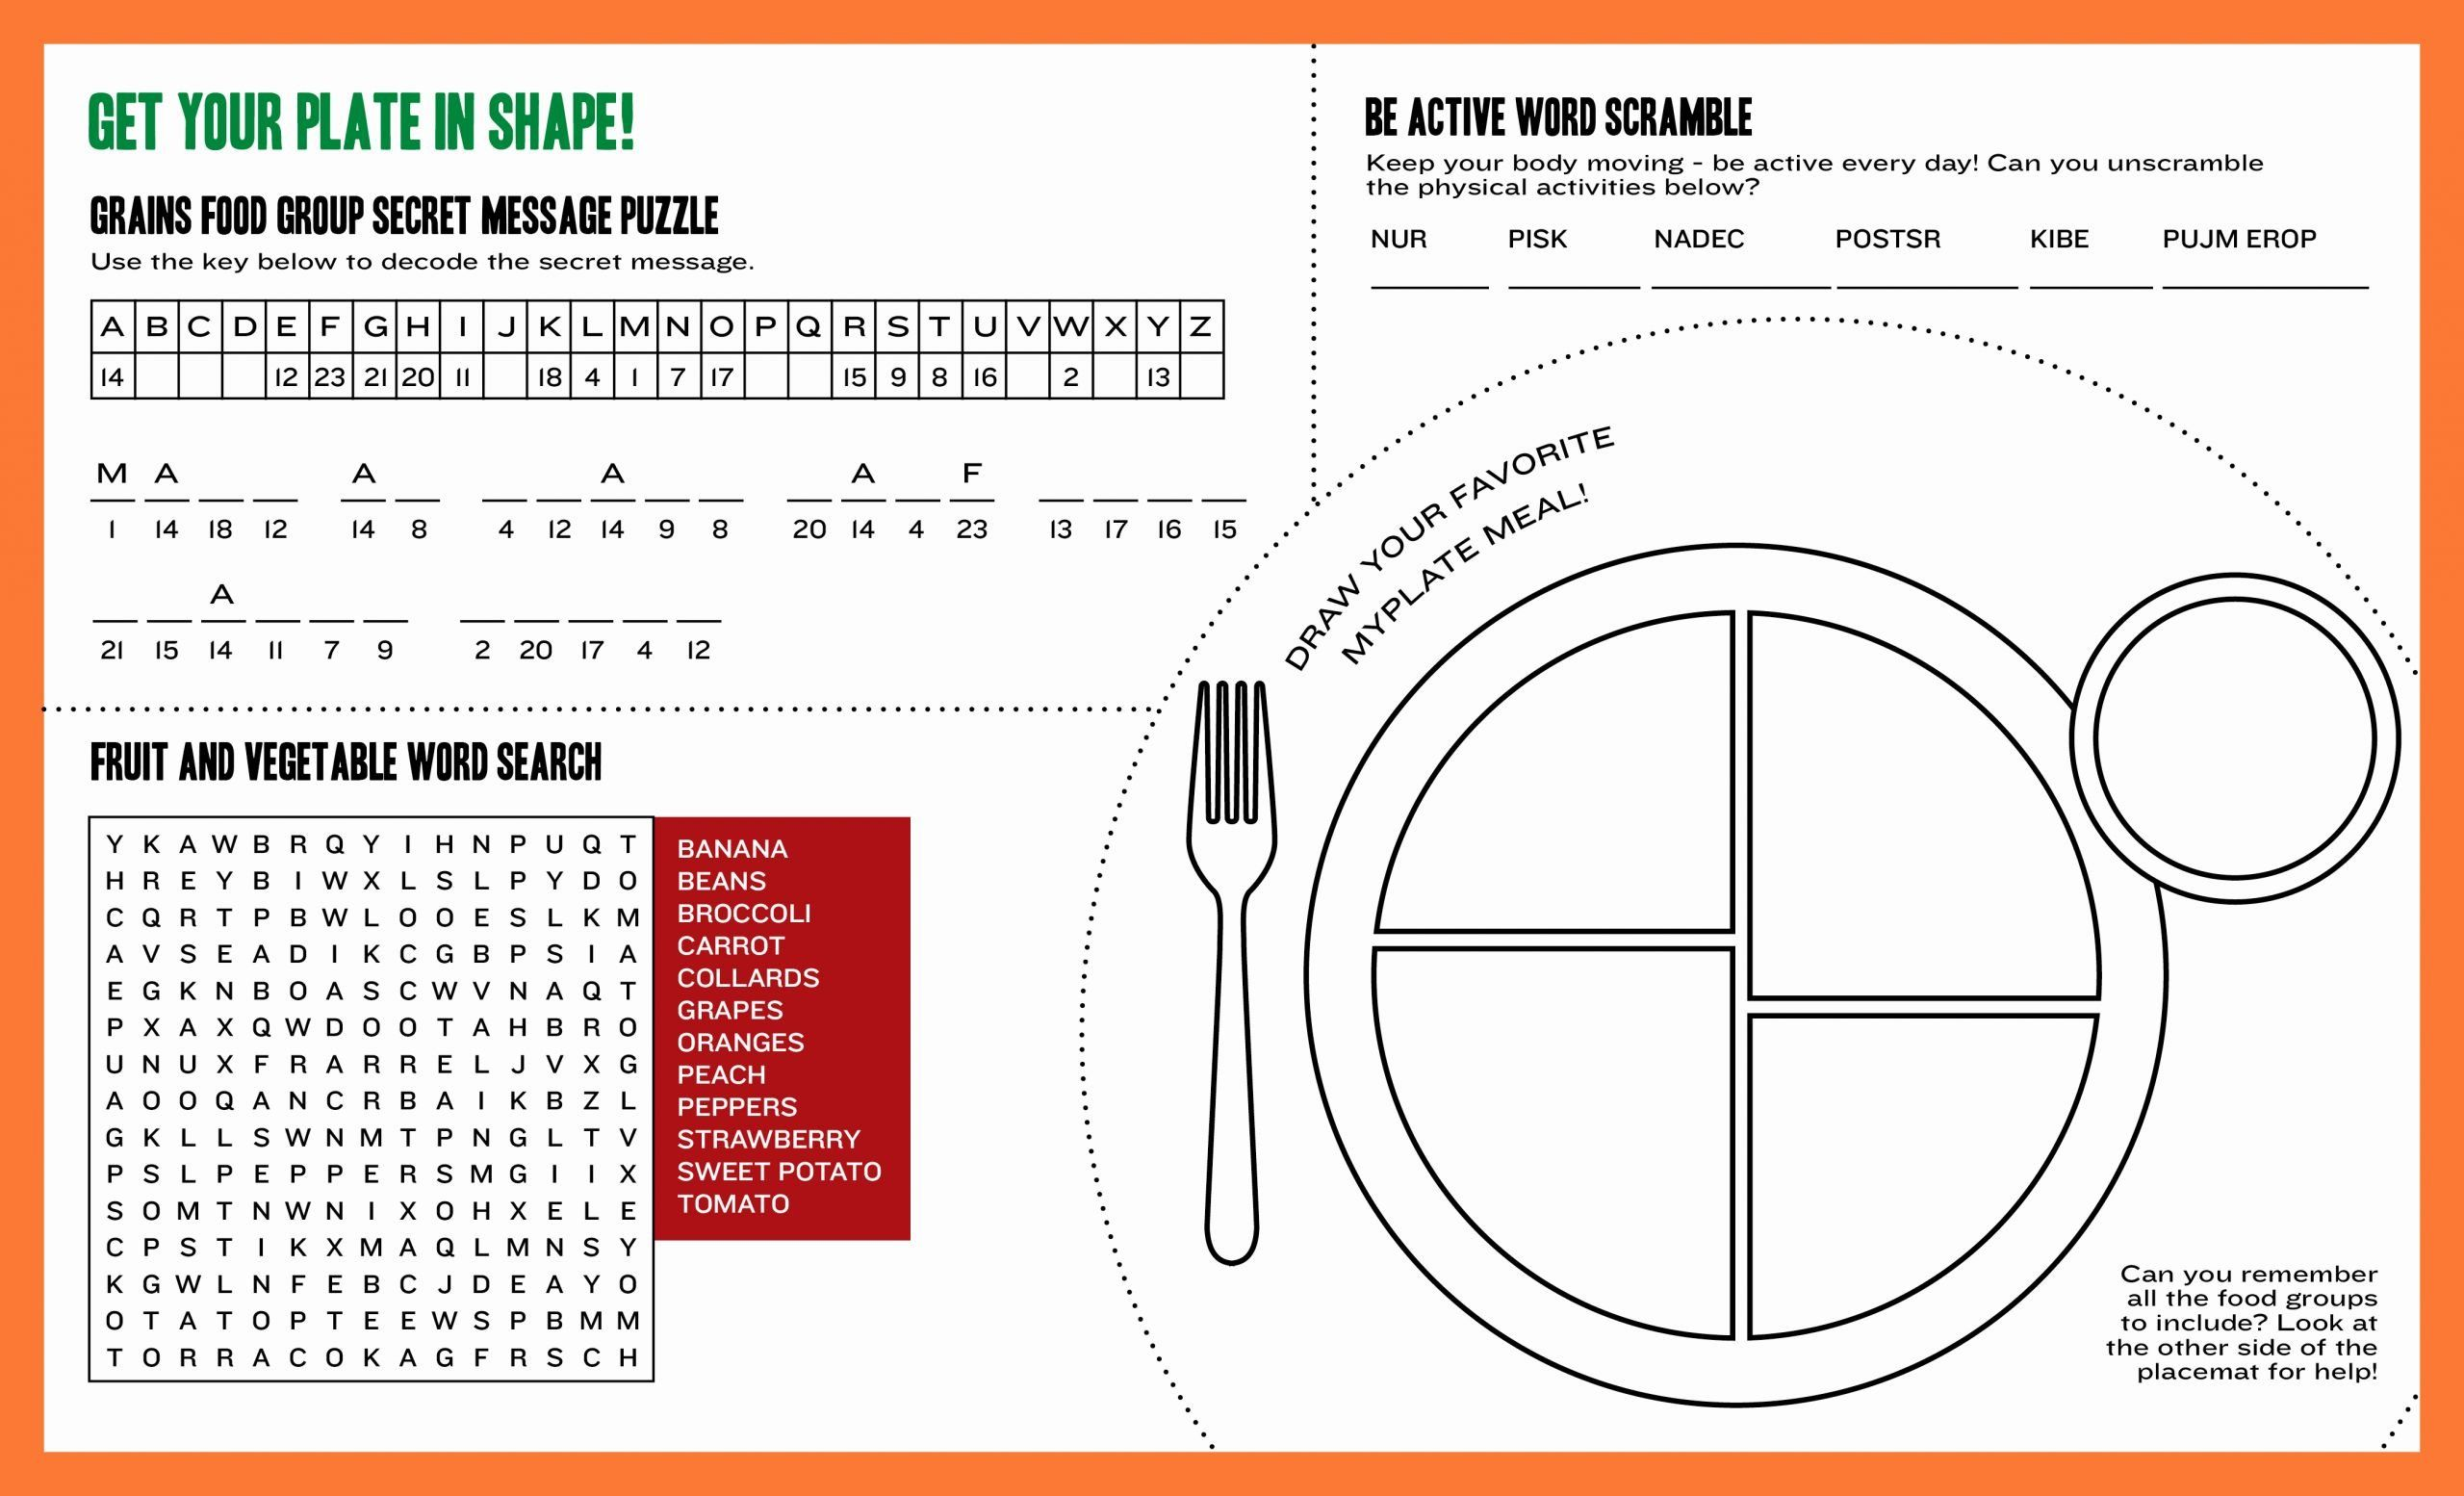 30 Precision Nutrition Meal Plan Template In